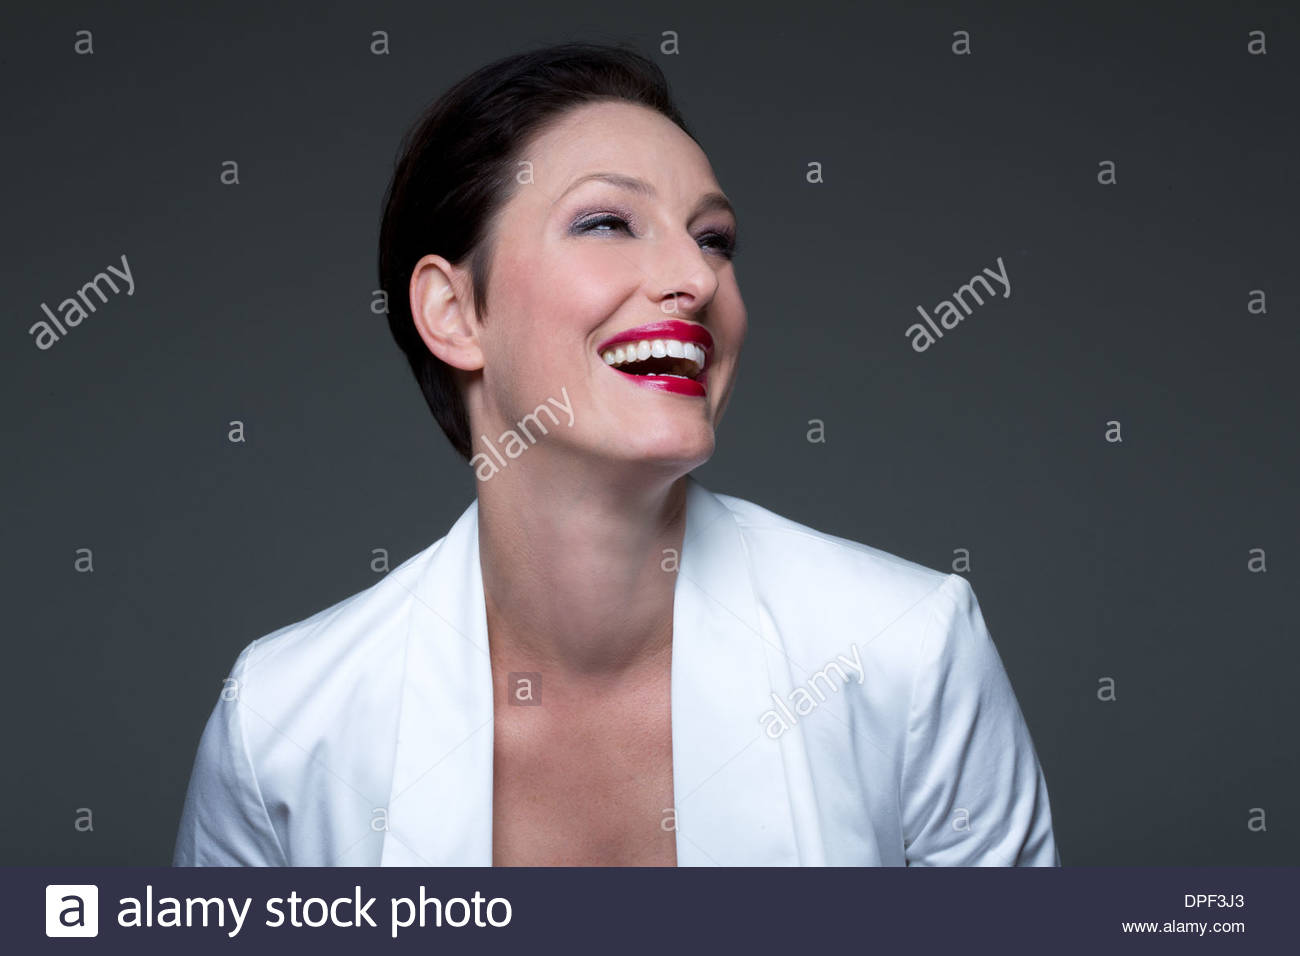 Portrait of mature woman wearing white jacket, laughing - Stock Image